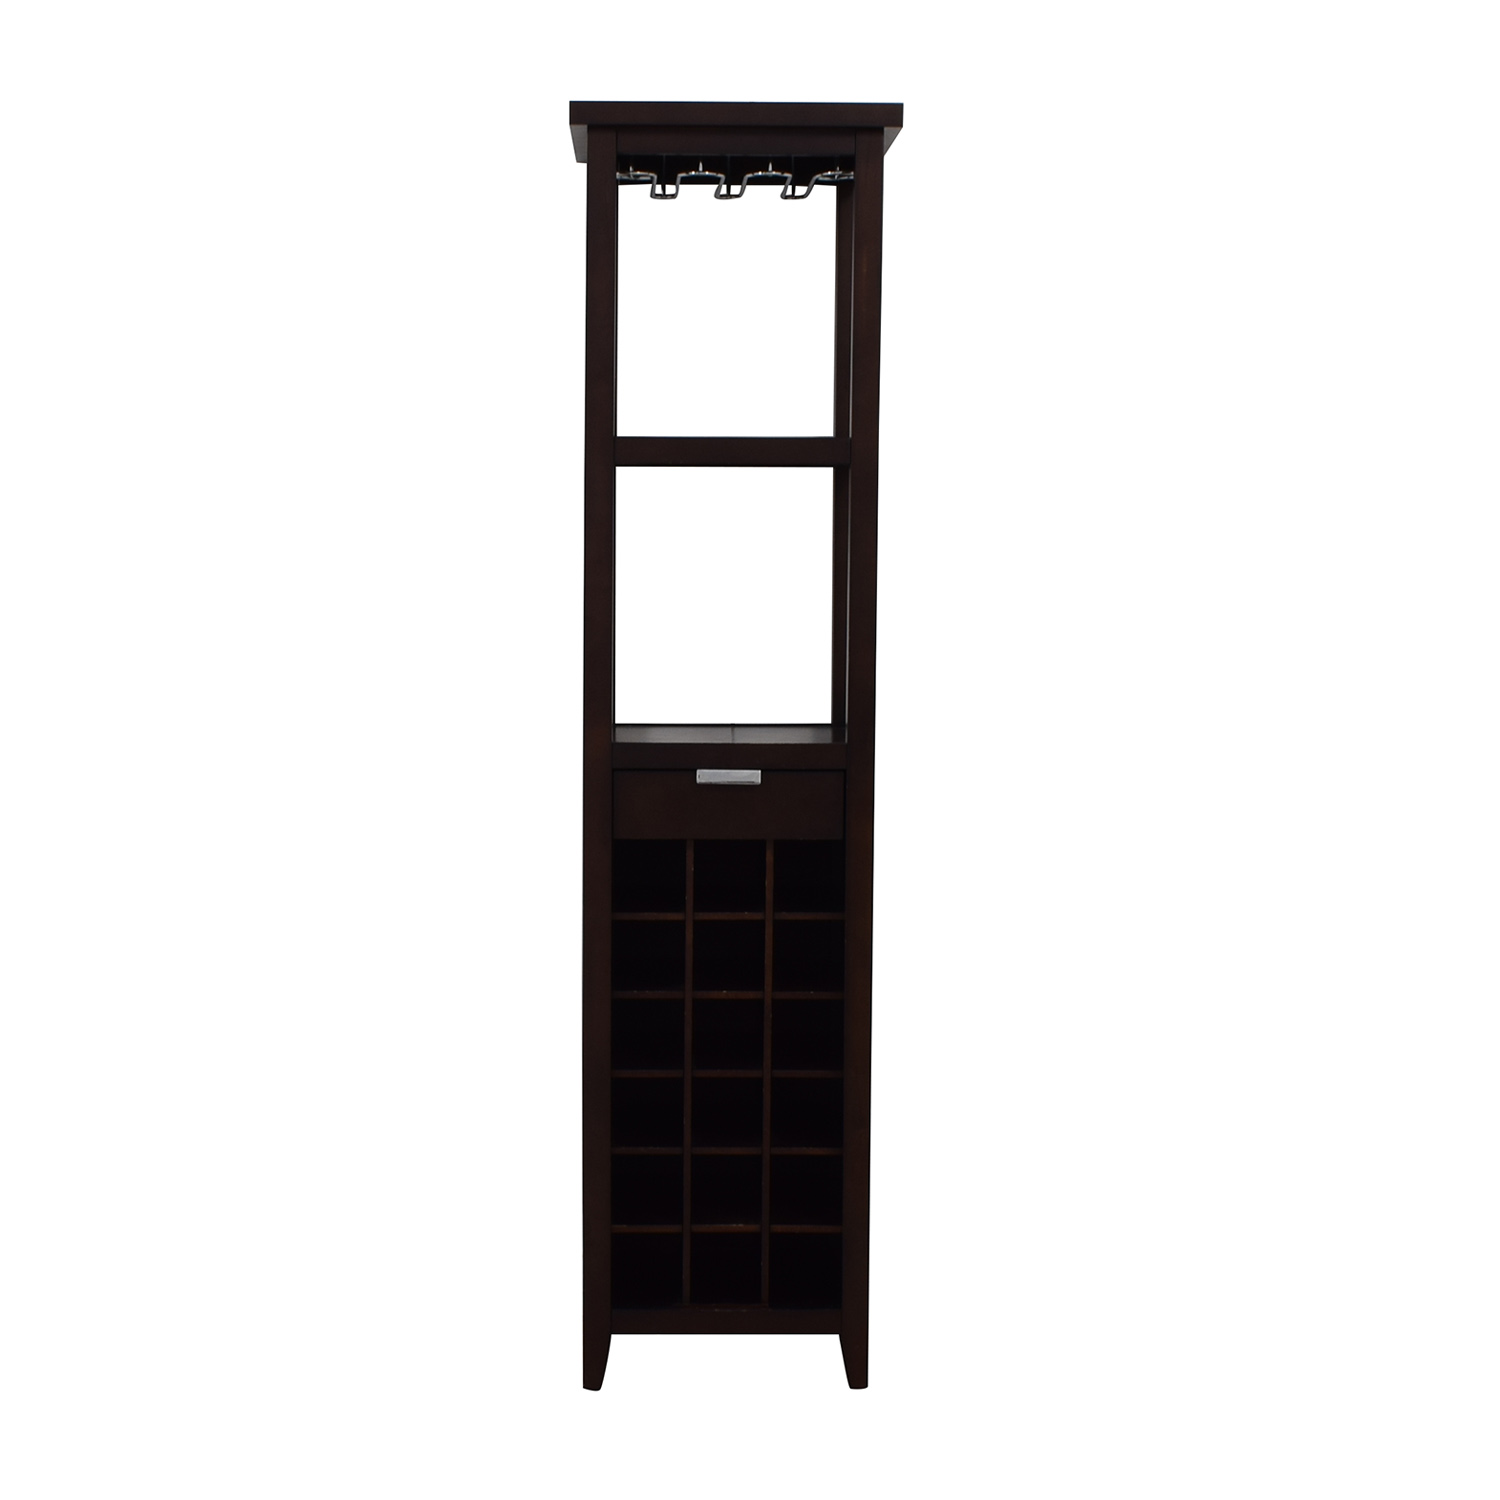 shop Crate & Barrel Slim Wine Tower Crate & Barrel Cabinets & Sideboards